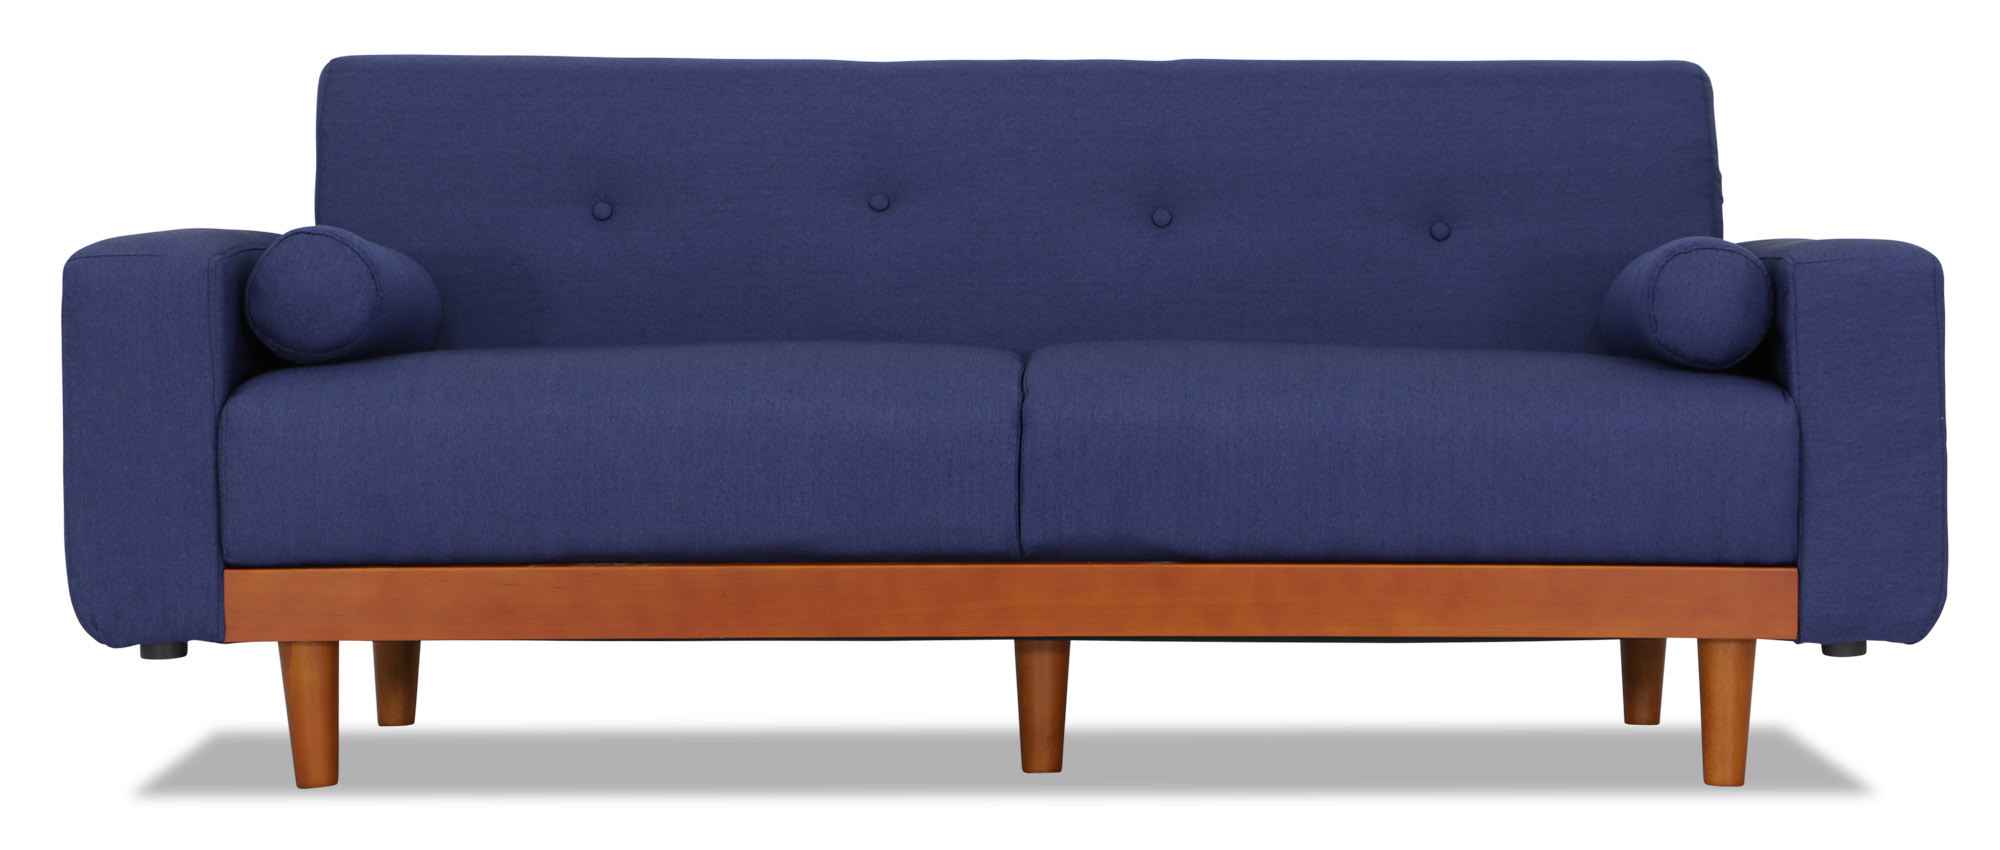 Miyako 3 seater sofa blue furniture home d cor fortytwo for Sofa 6 seater